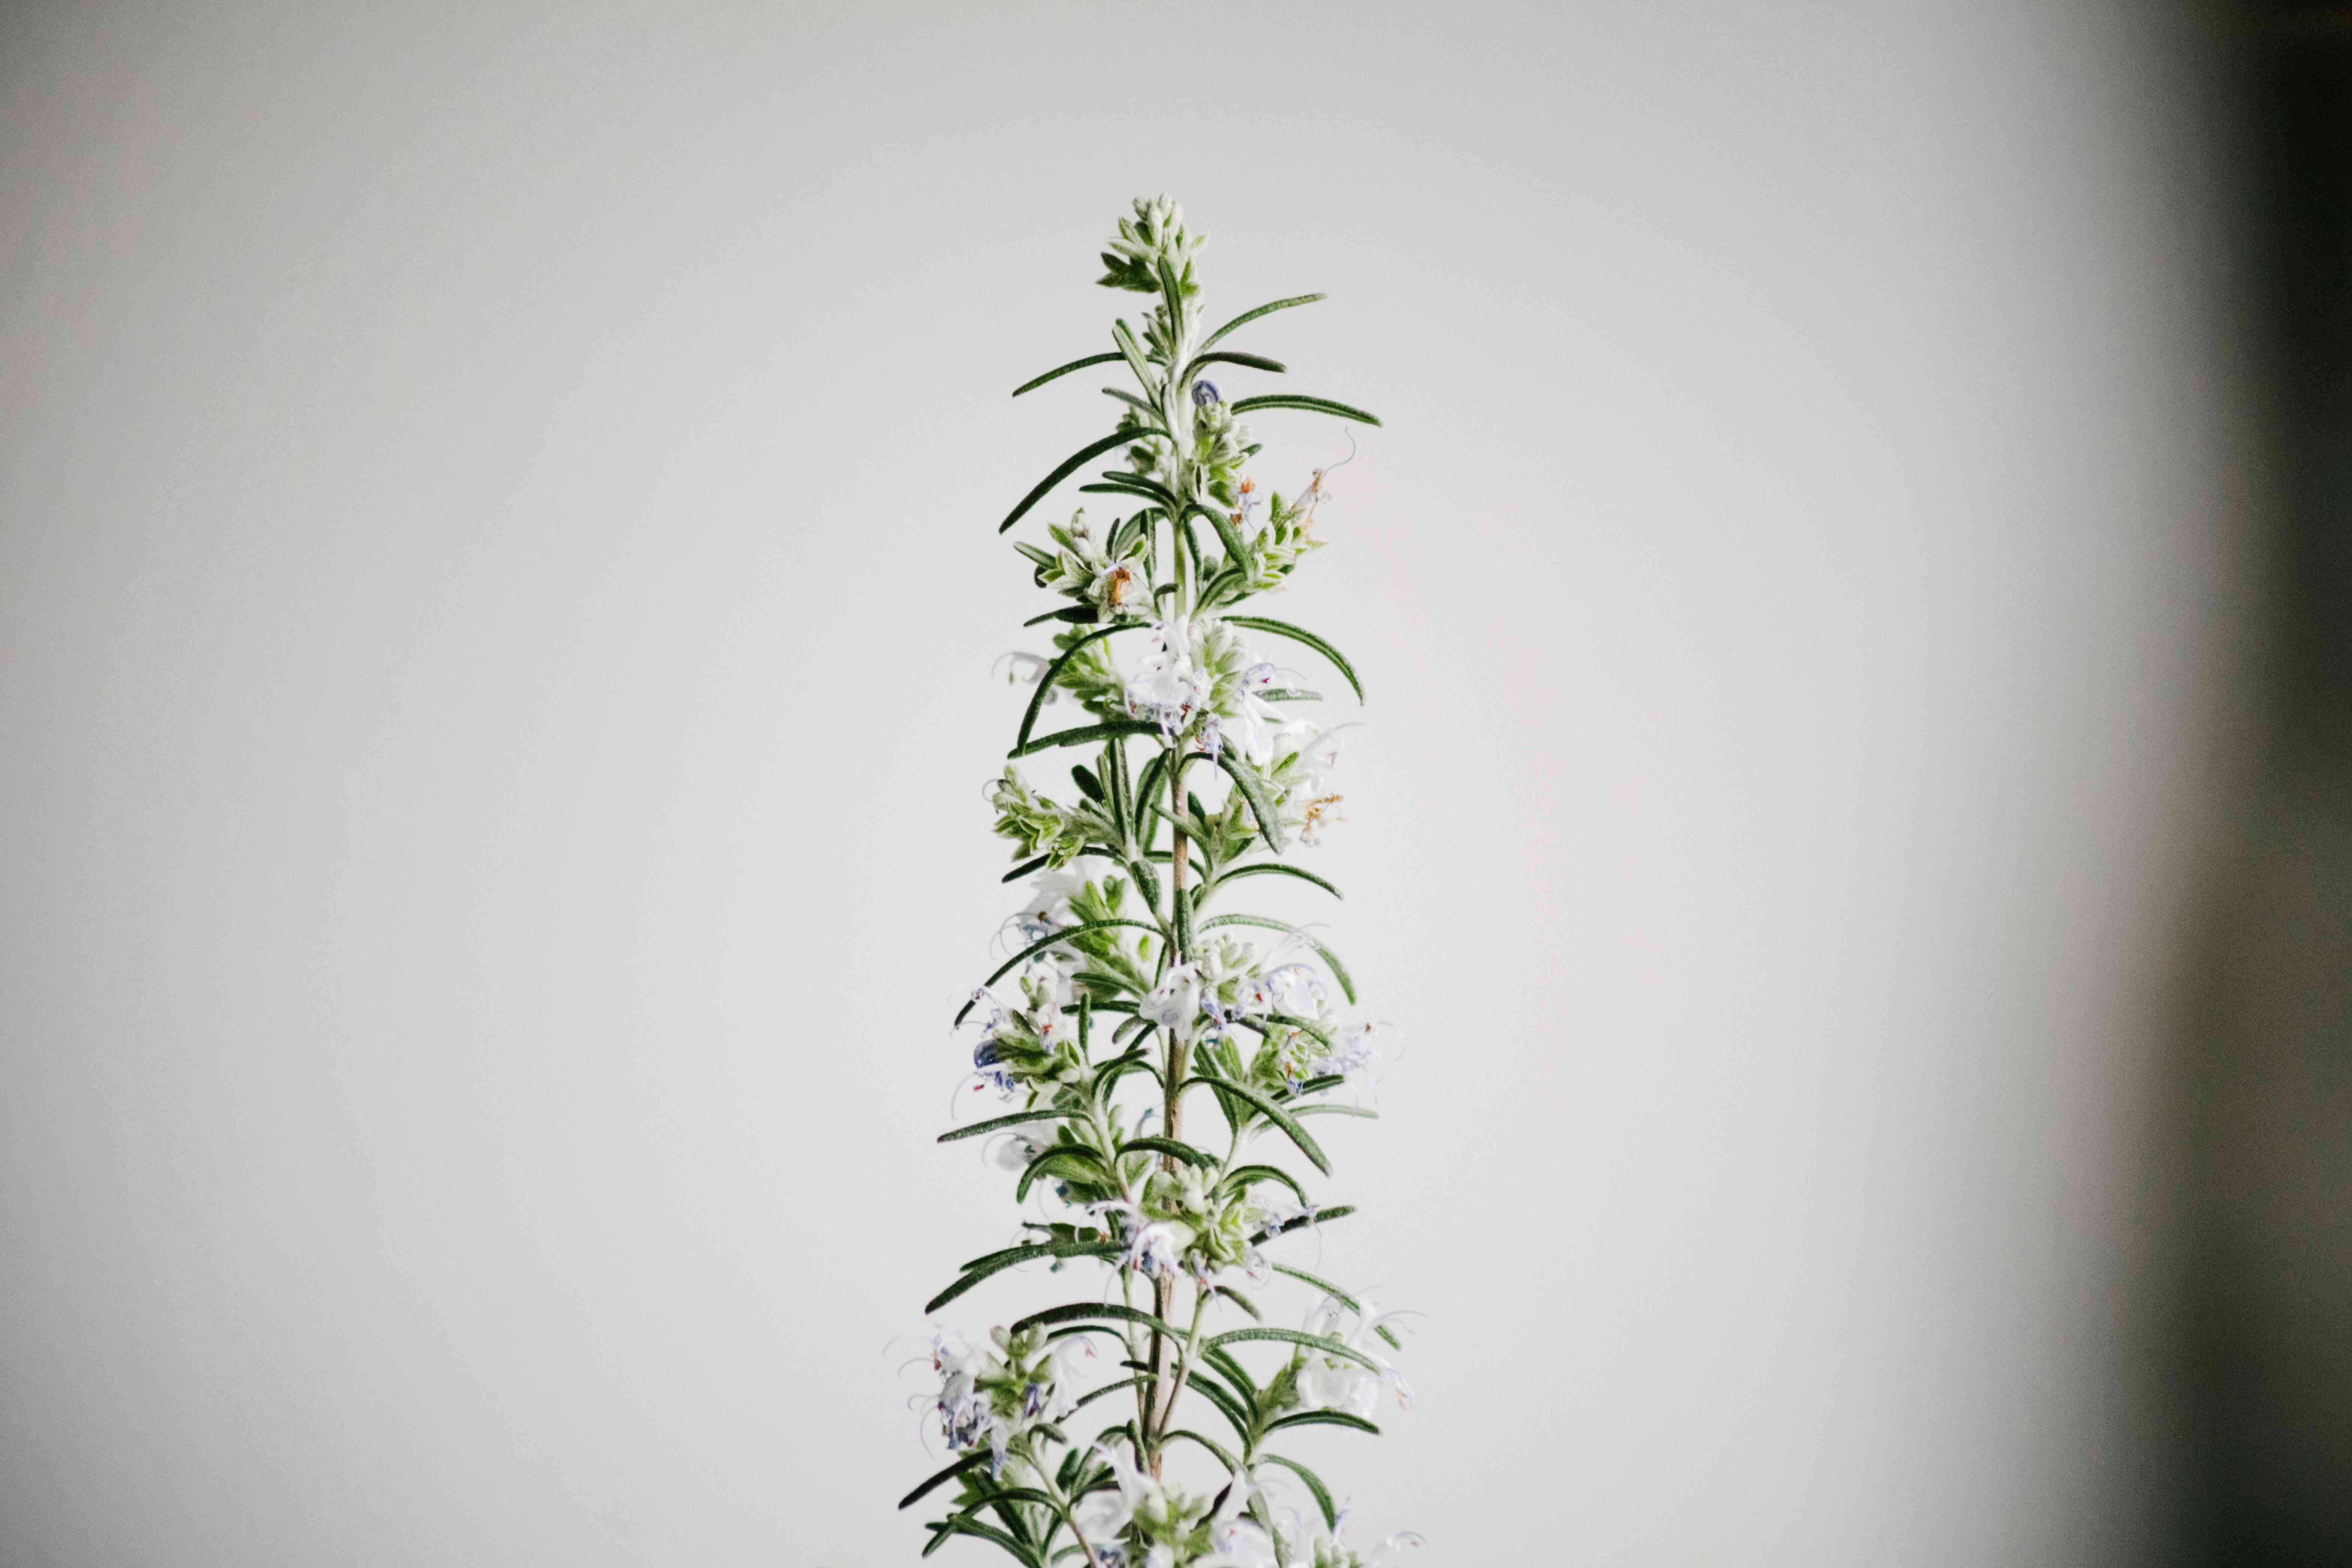 single stalk of rosemary herb with small flowering white blossoms in vignette